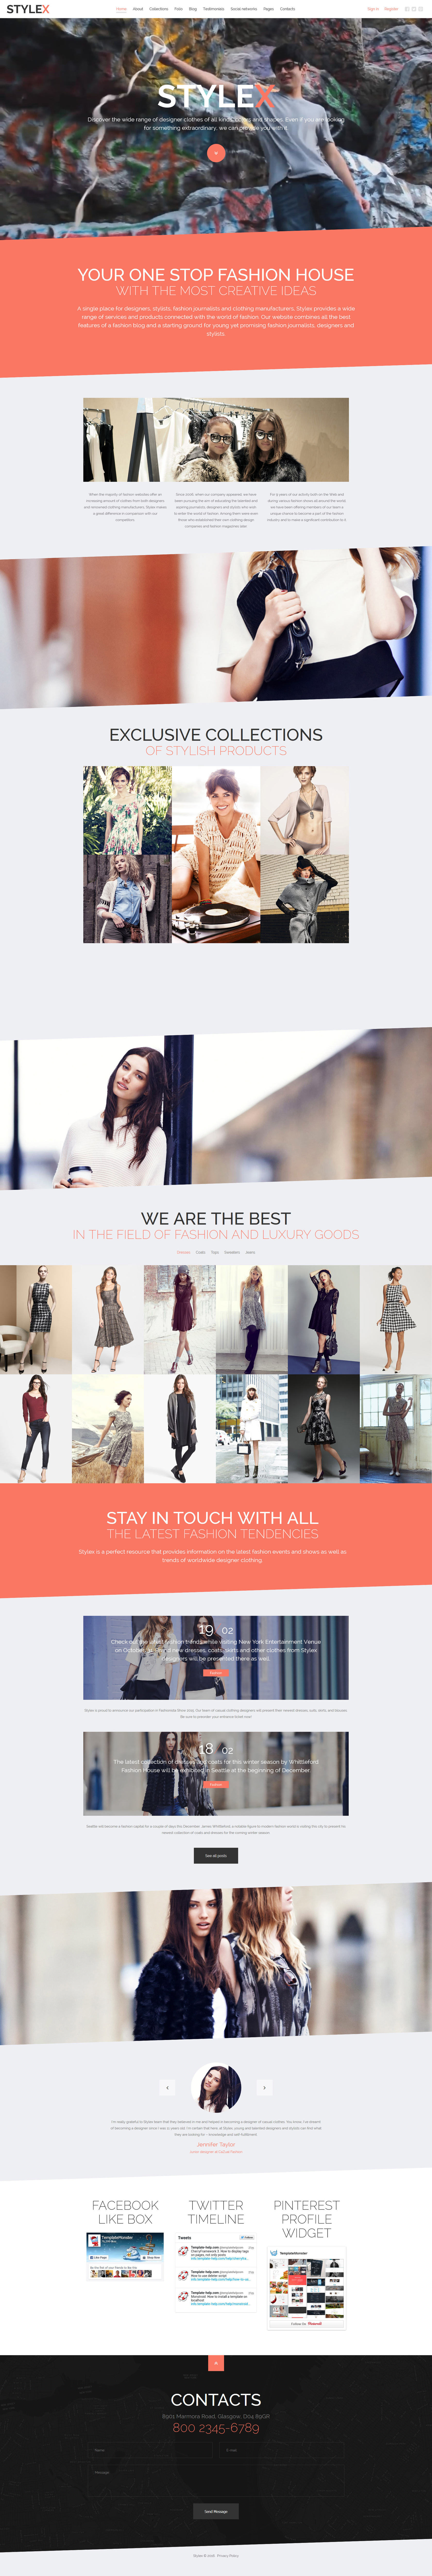 Apparel Responsive Joomla Template - screenshot